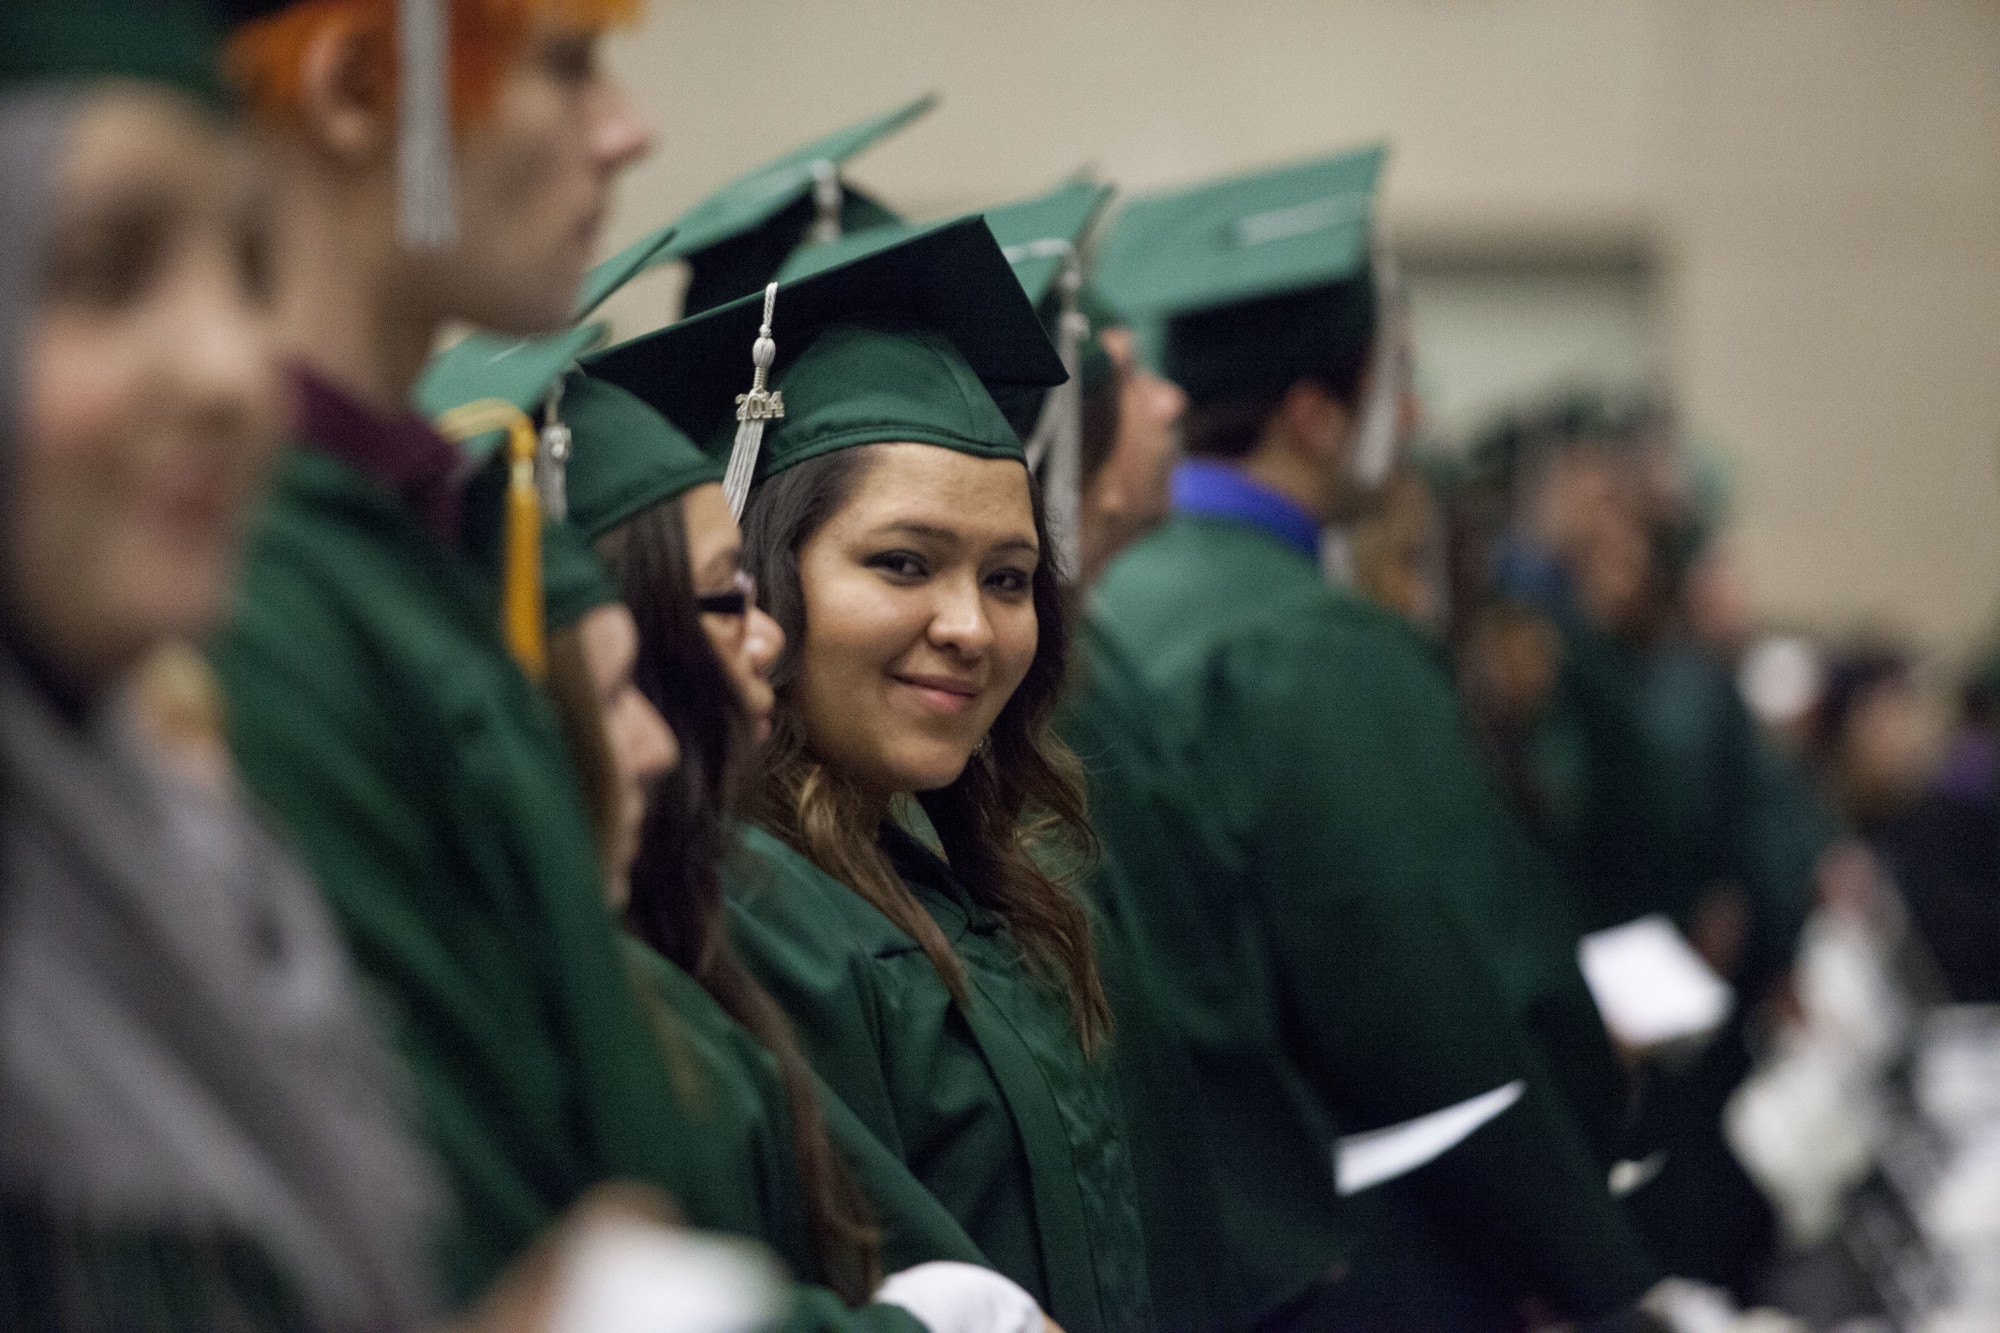 Girl in green cap & gown - ideas42